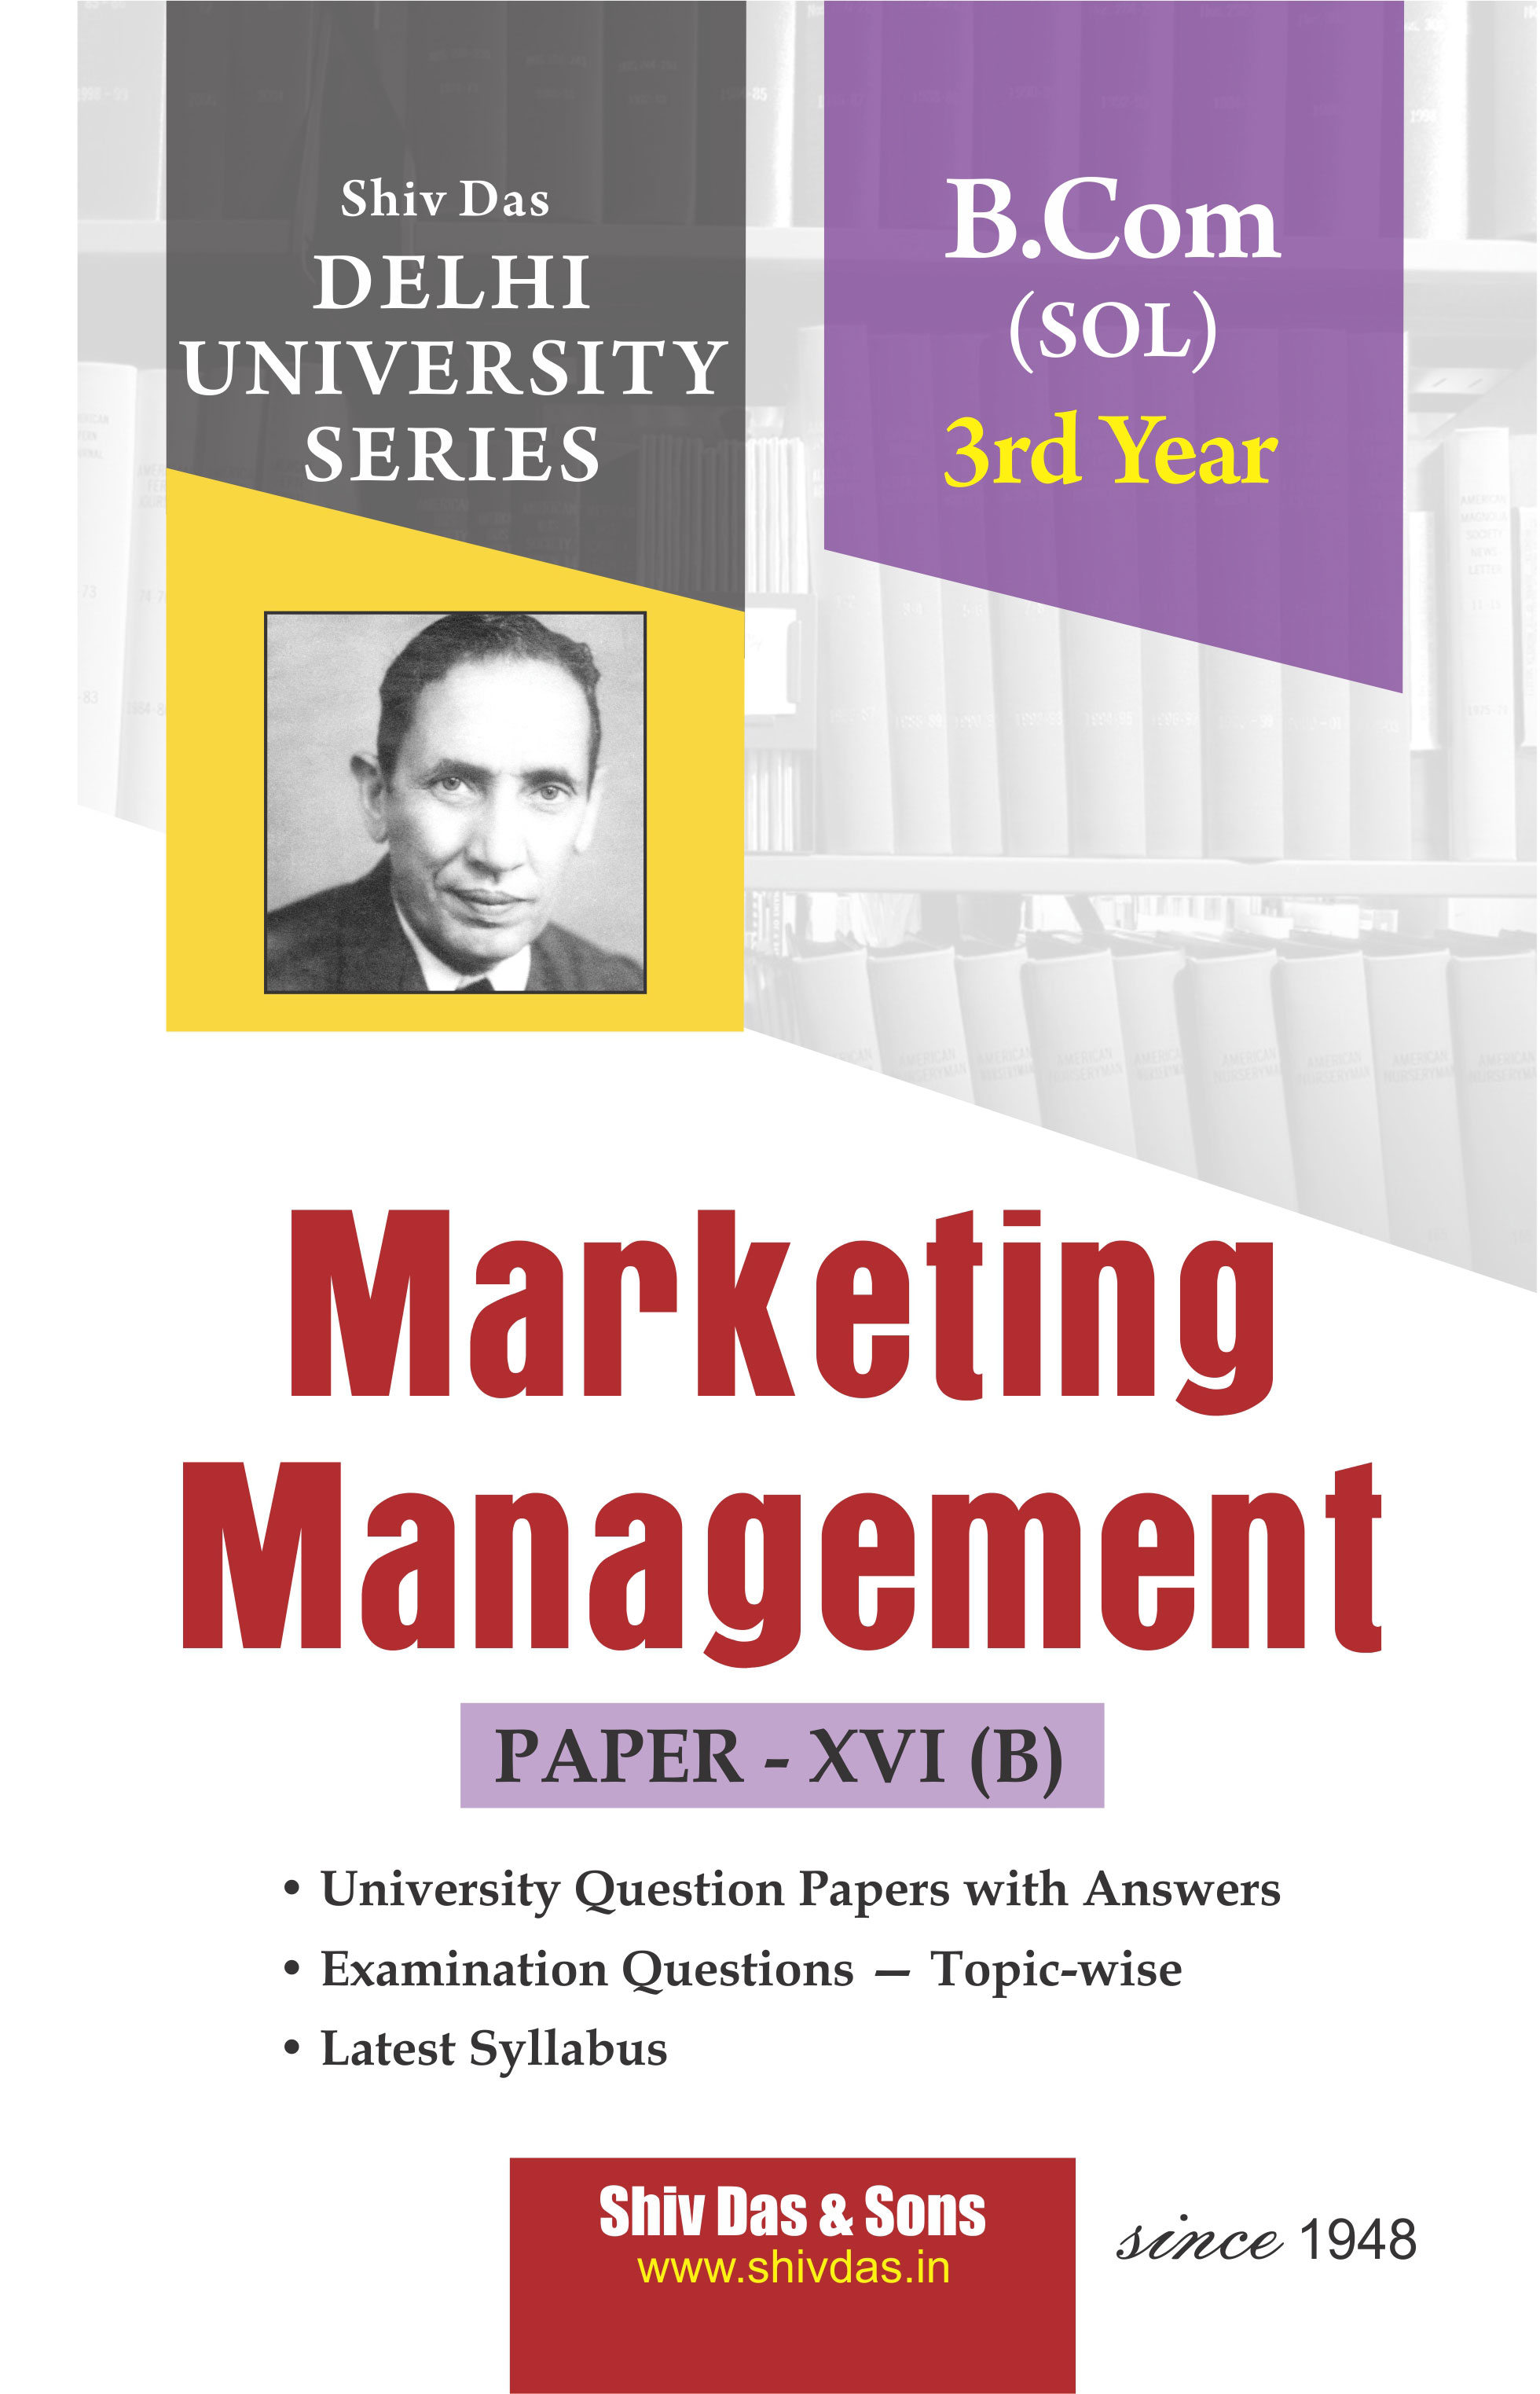 Marketing Management (Eng. Medium) for B.Com 3rd Year SOL/External